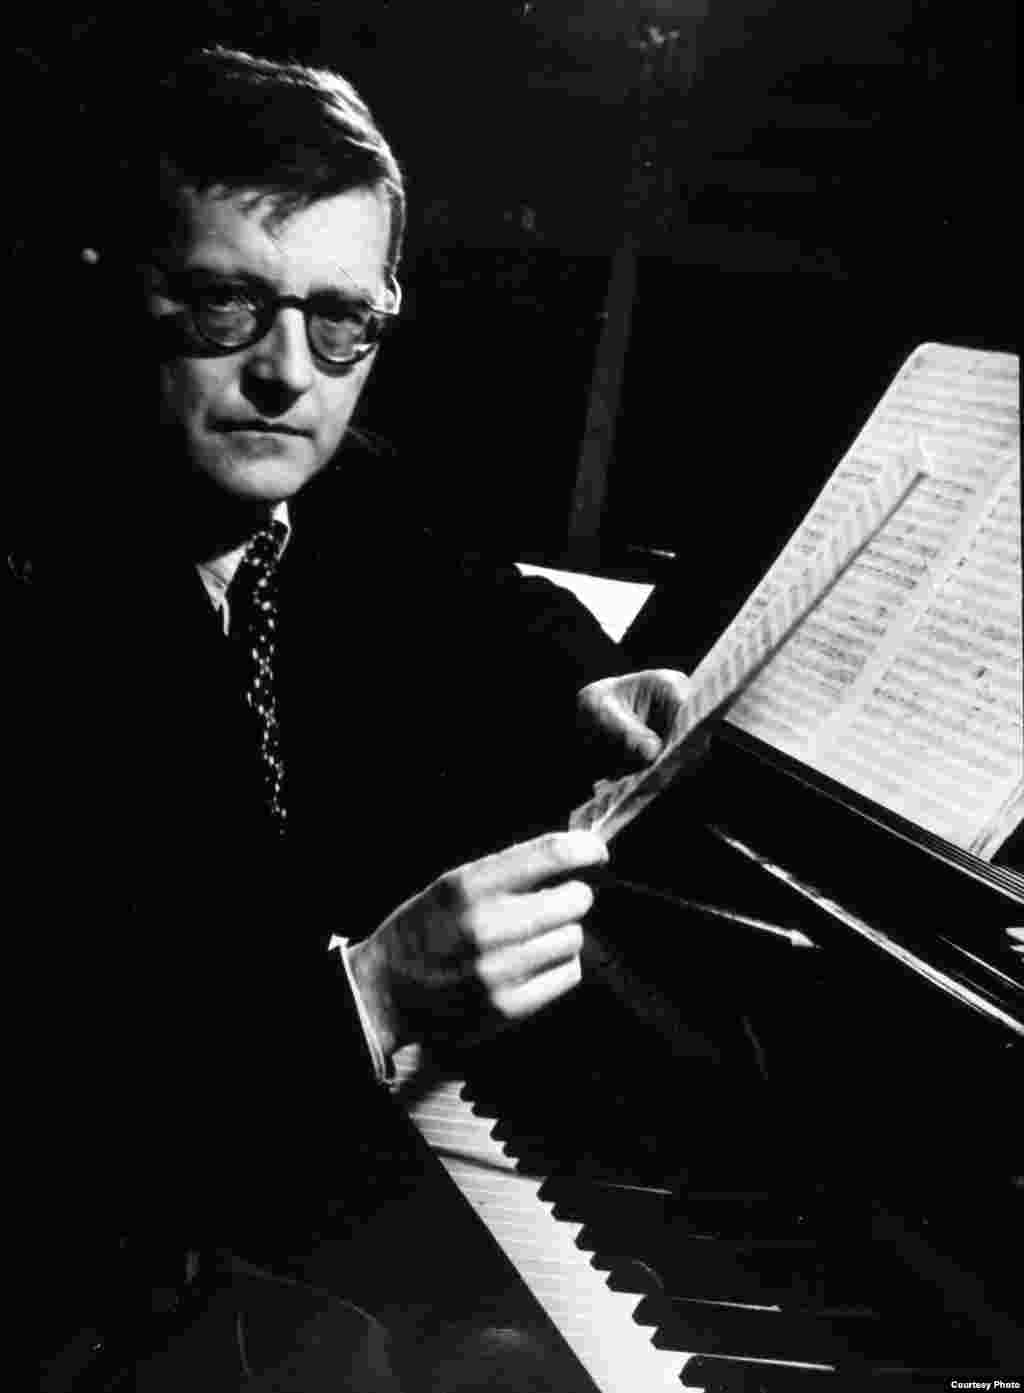 Dmitry Shostakovich at the piano in Moscow, 1951